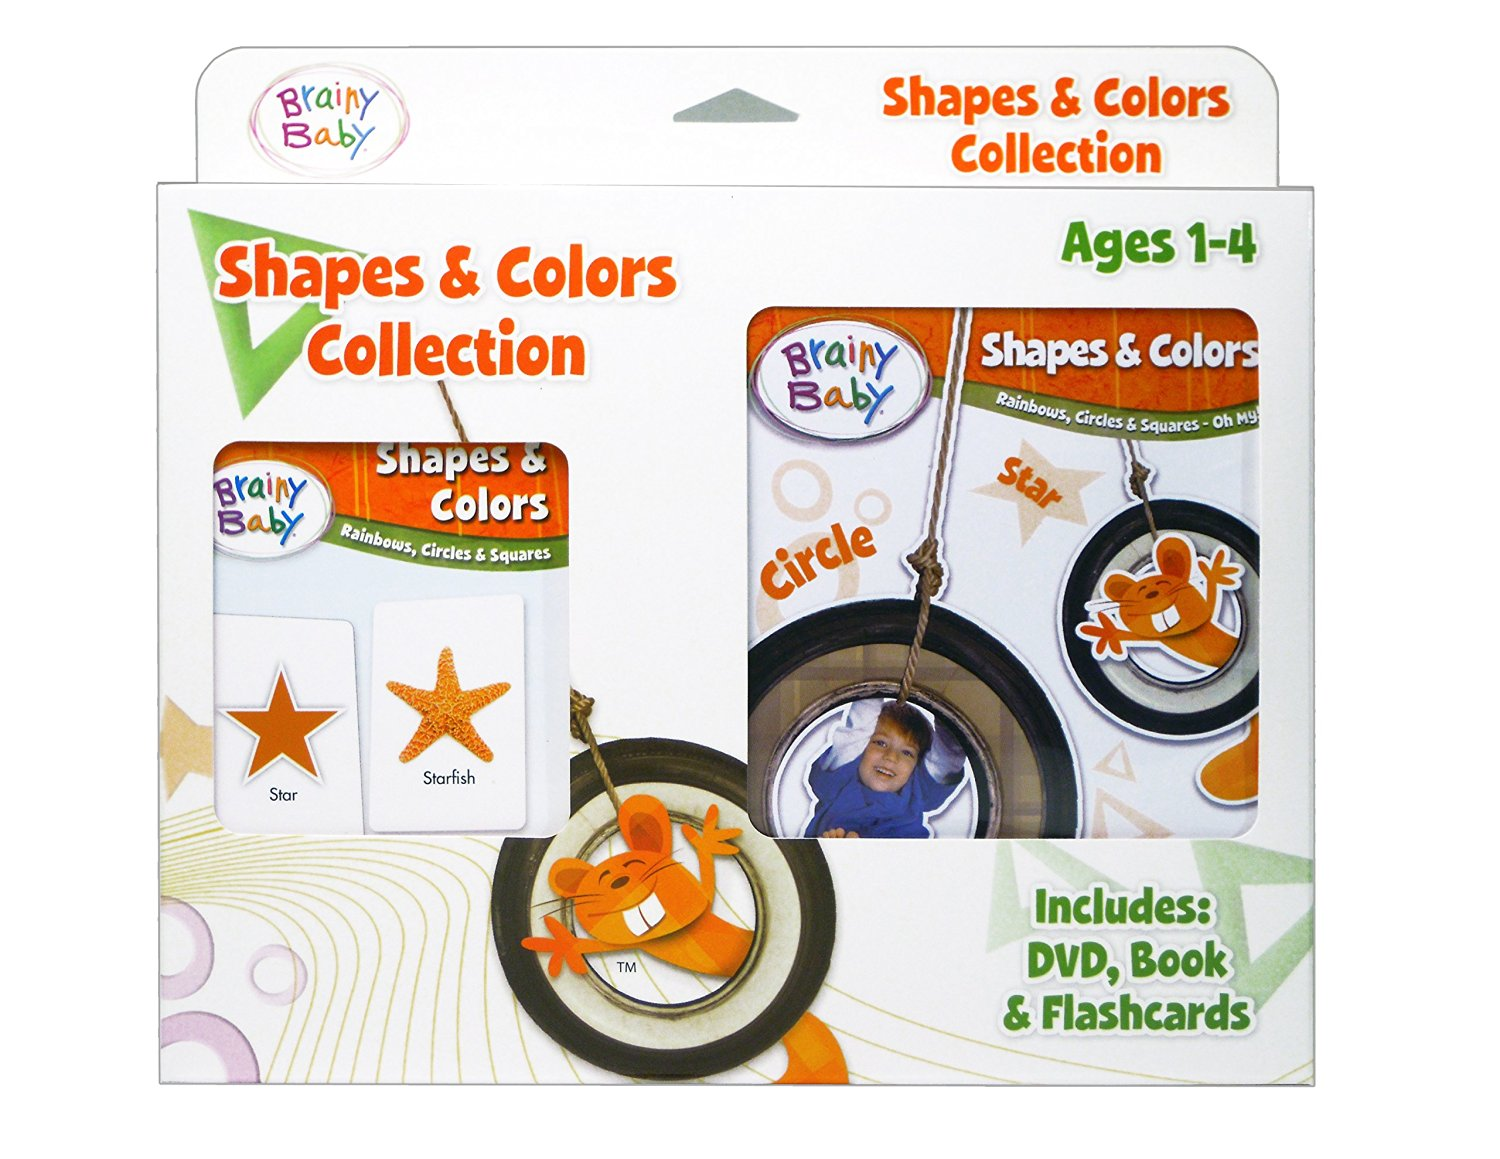 Brainy Baby Flash Cards, DVD and Board Book Shapes and Colors: Rainbows, Circles and Squares Collection